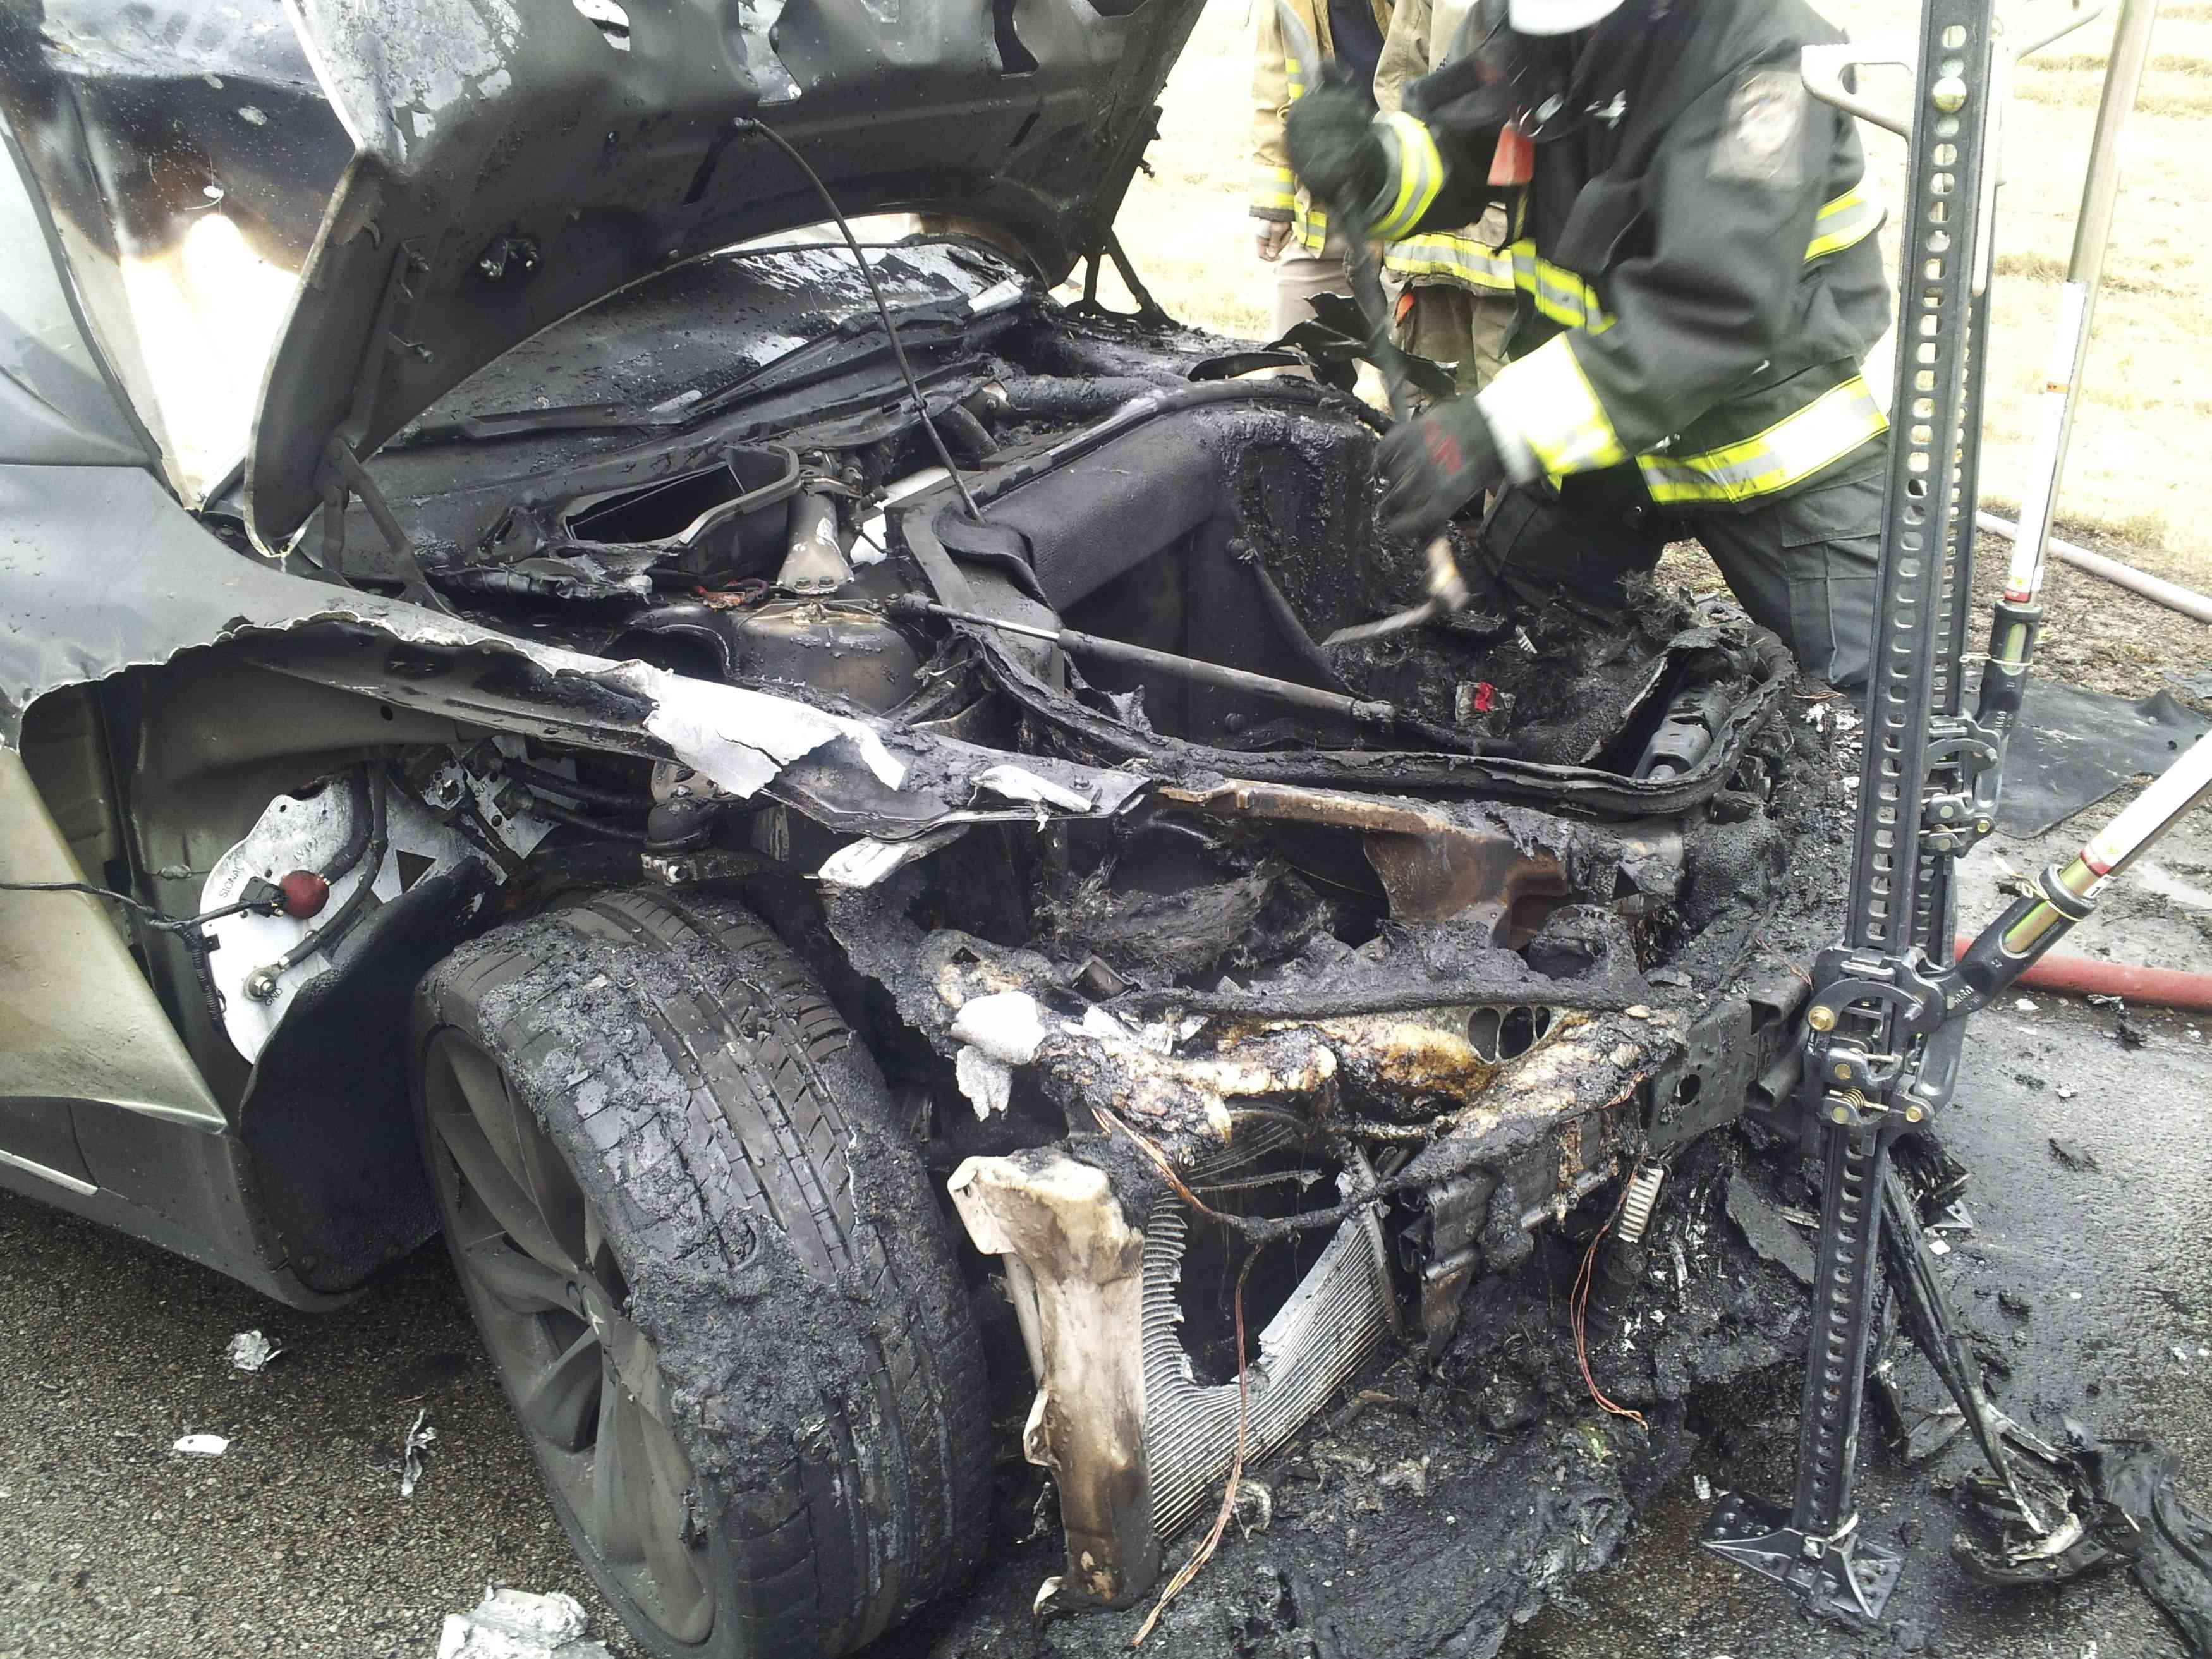 A Tesla Model S automobile destroyed by a fire is seen in a handout picture from the Tennessee Highway Patrol taken in Smyrna, Tenn., Nov. 6, 2013.